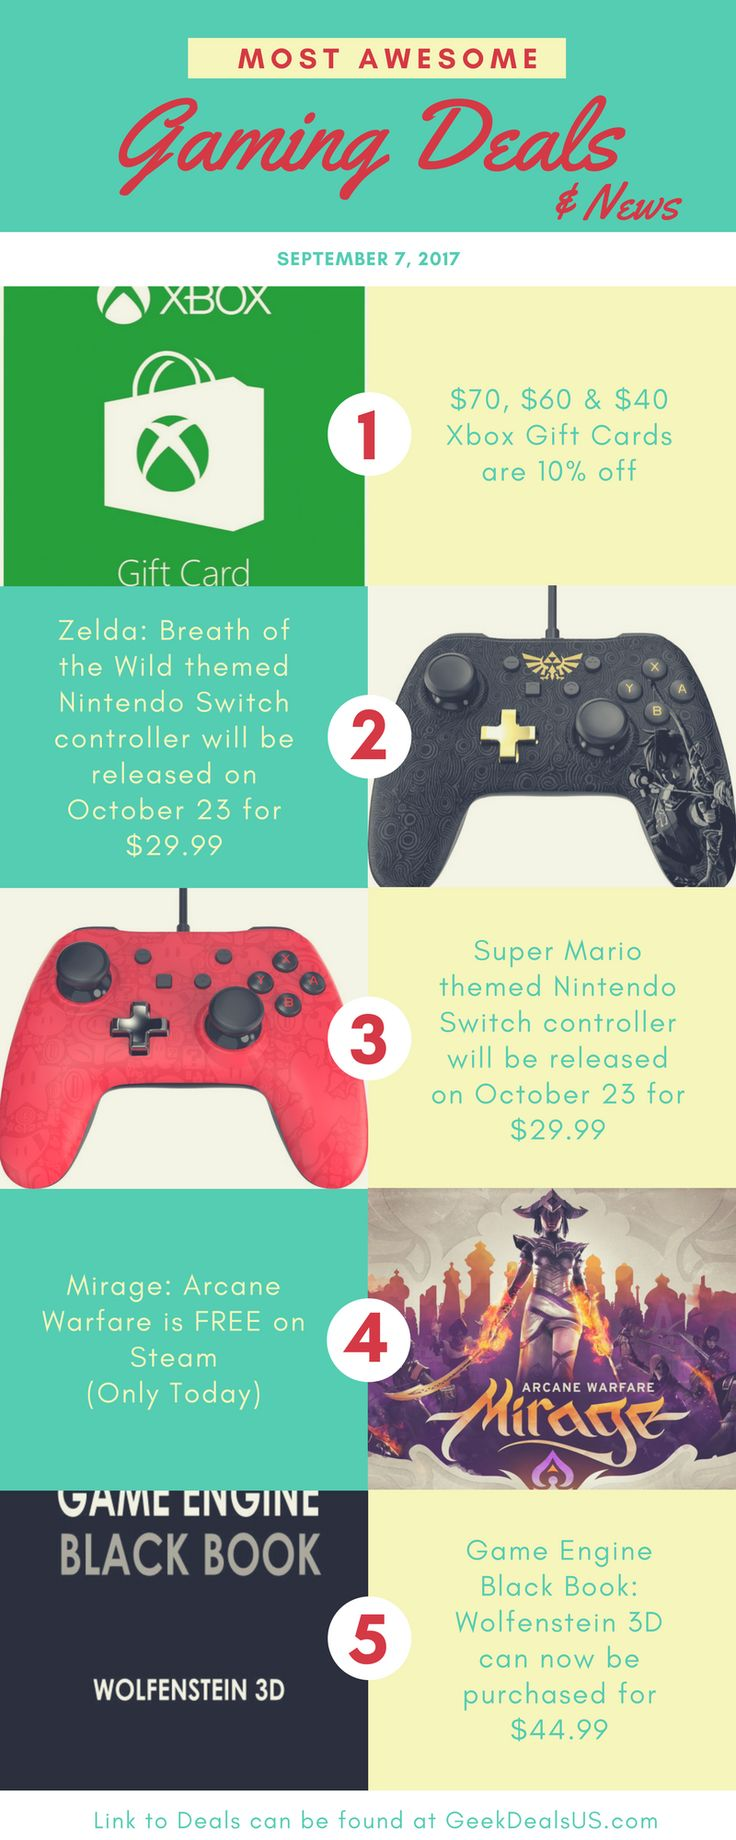 5 Most Awesome Gaming Deals & News Today: September 7 https://i.redd.it/y811lg746gkz.png #gamernews #gamer #gaming #games #Xbox #news #PS4